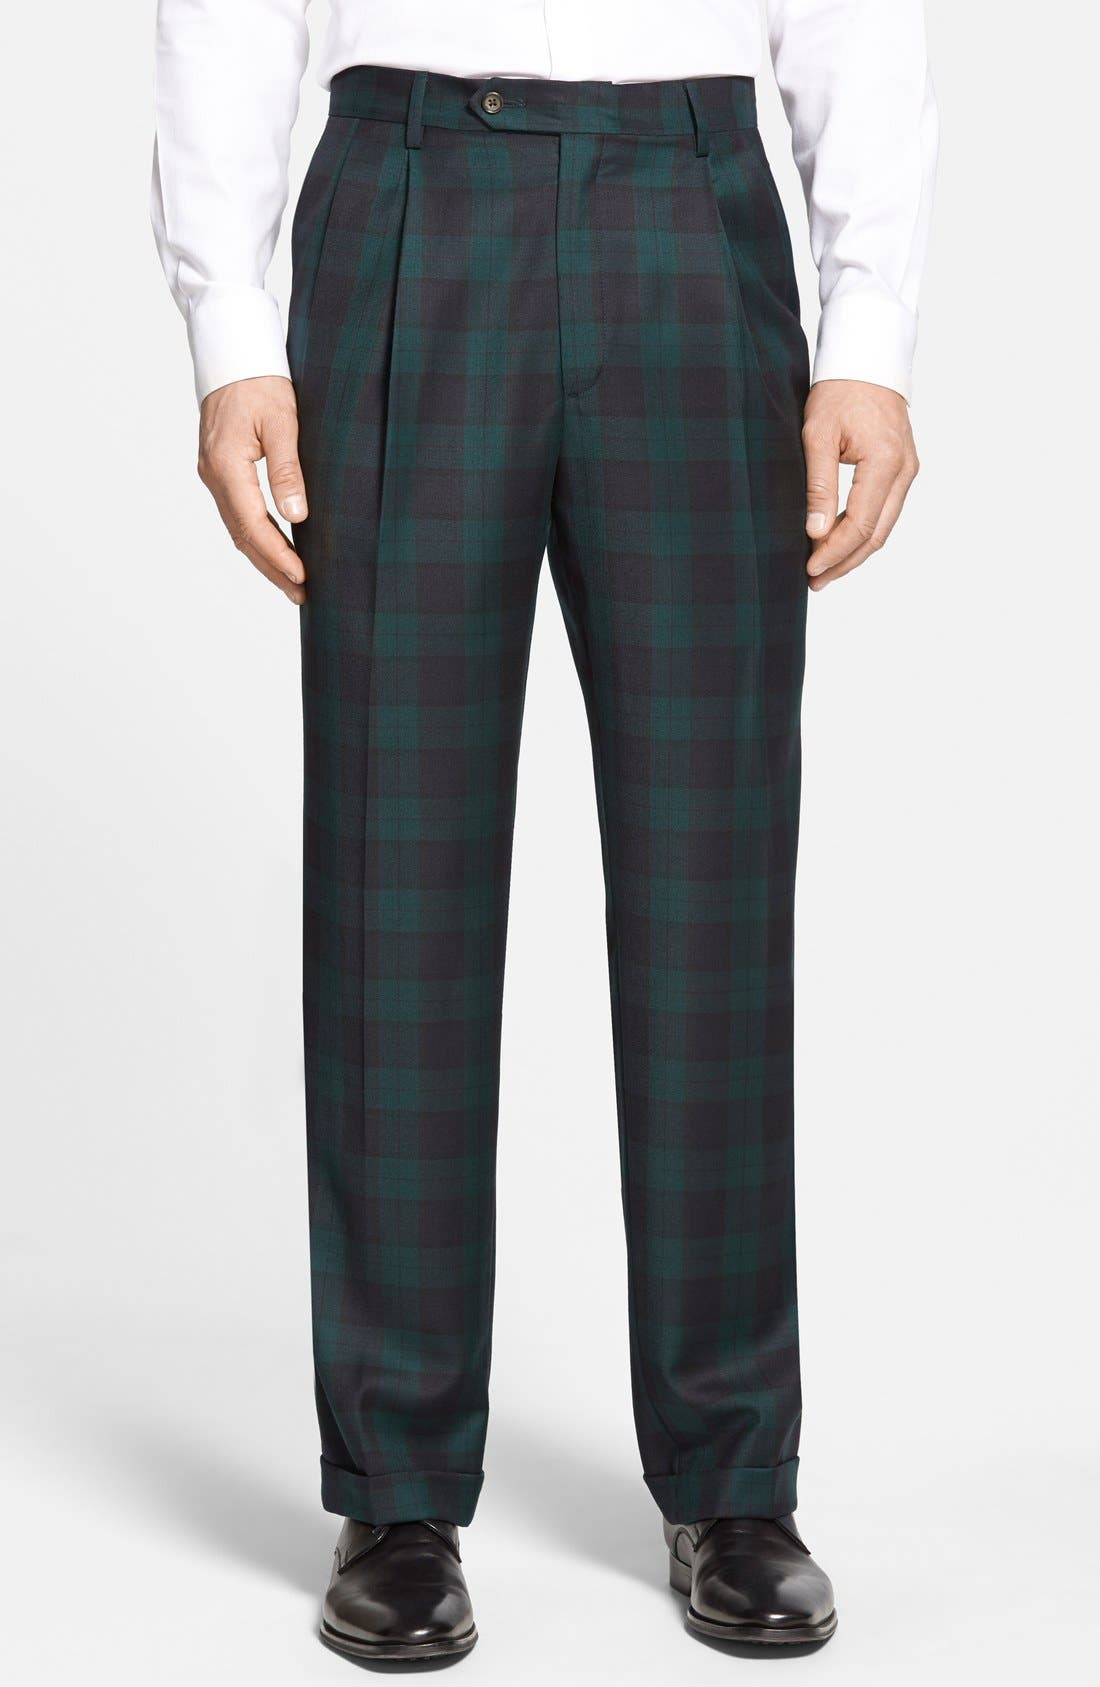 Men's Vintage Pants, Trousers, Jeans, Overalls Mens Berle Pleated Plaid Wool Trousers Size 42 x 32 - Green $175.00 AT vintagedancer.com